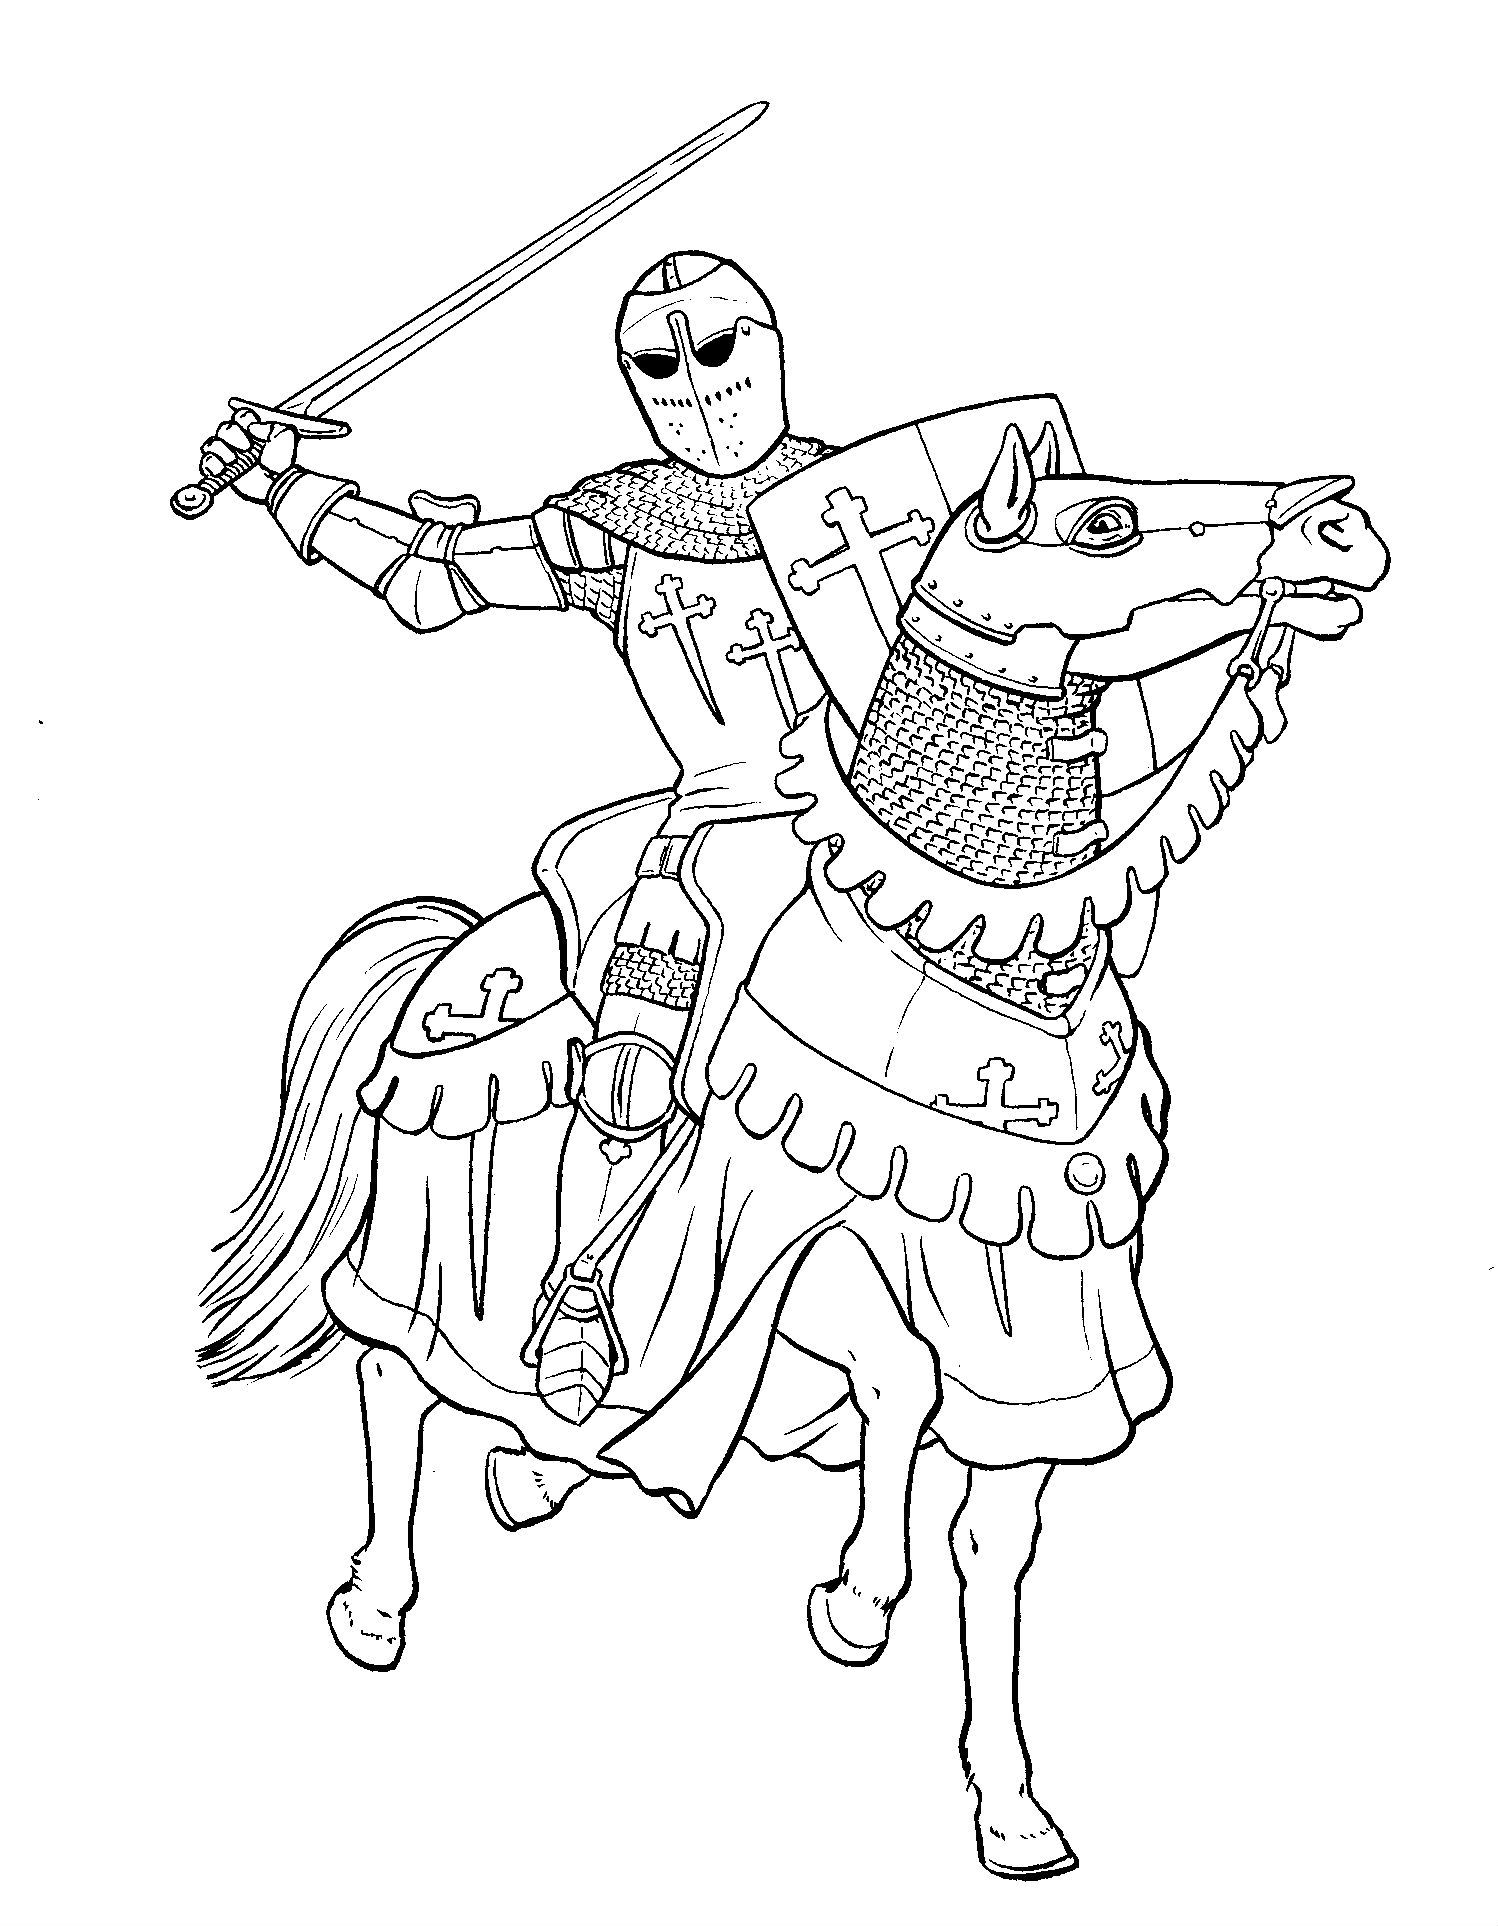 Knights Mighty Coloring Page Coloriage Dessin Dessin A Colorier